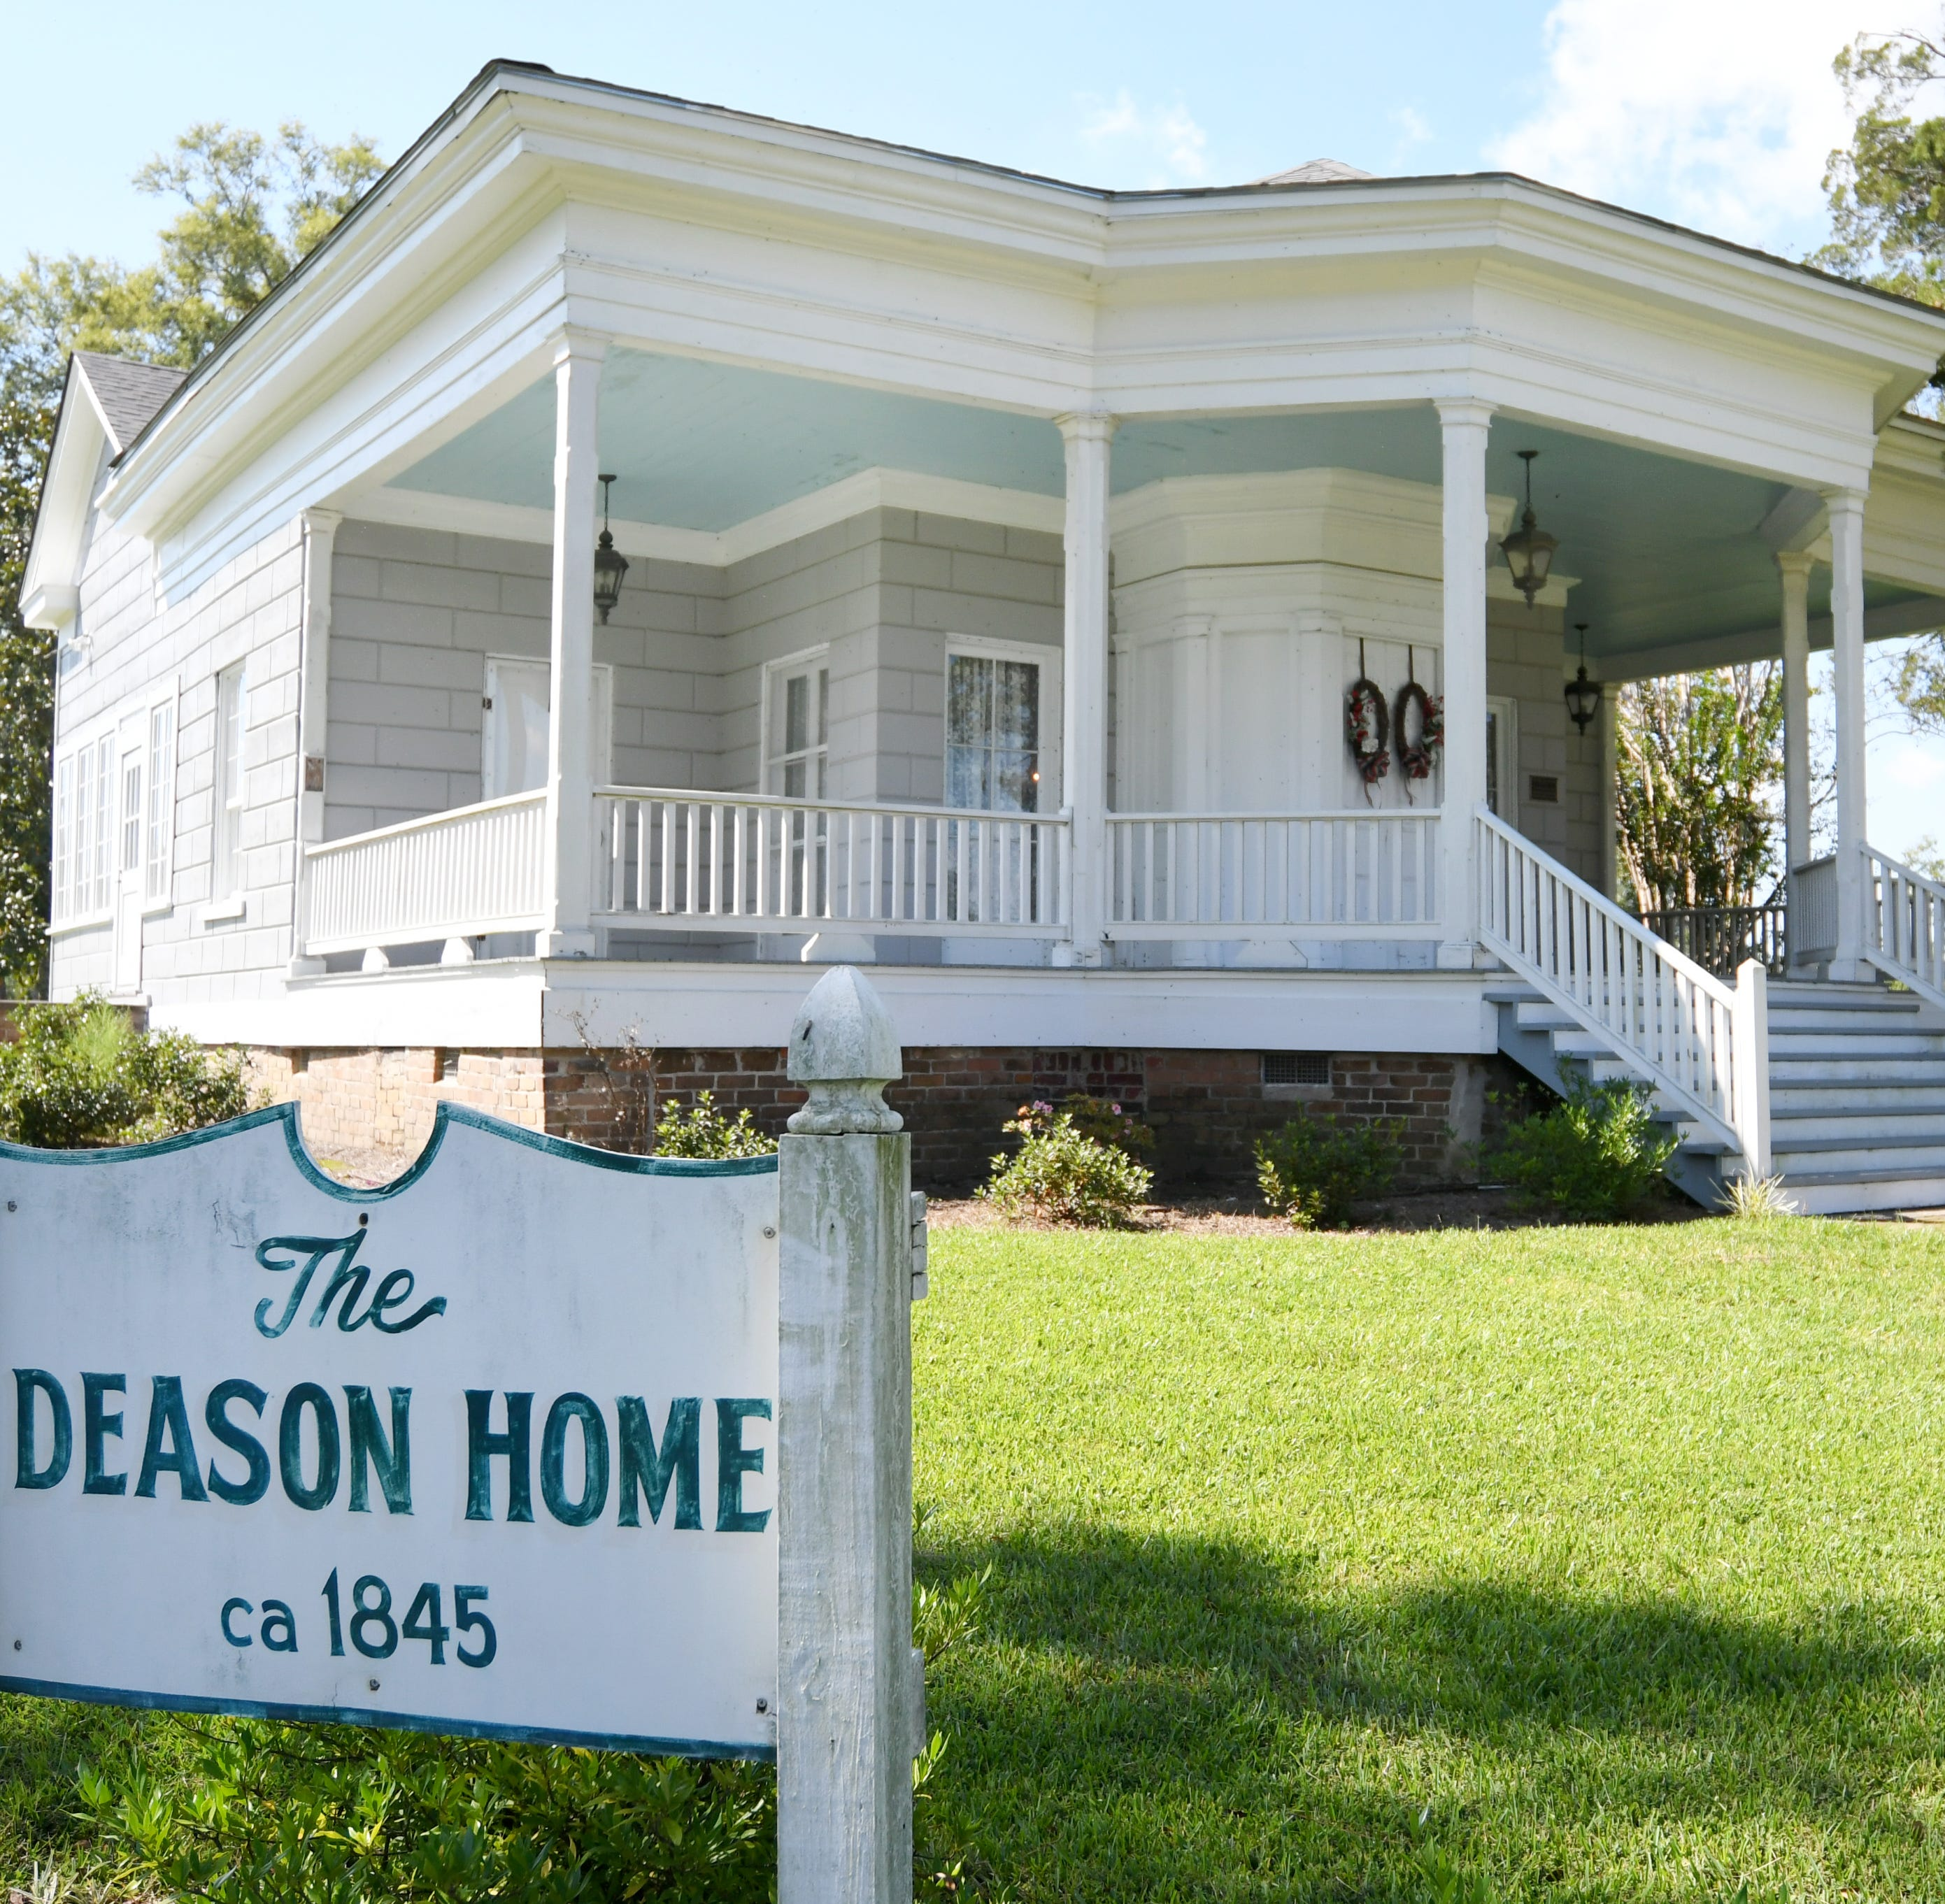 Ellisville's 1845 Deason Home: Haunt of Civil War ghost or blessed antebellum dwelling?